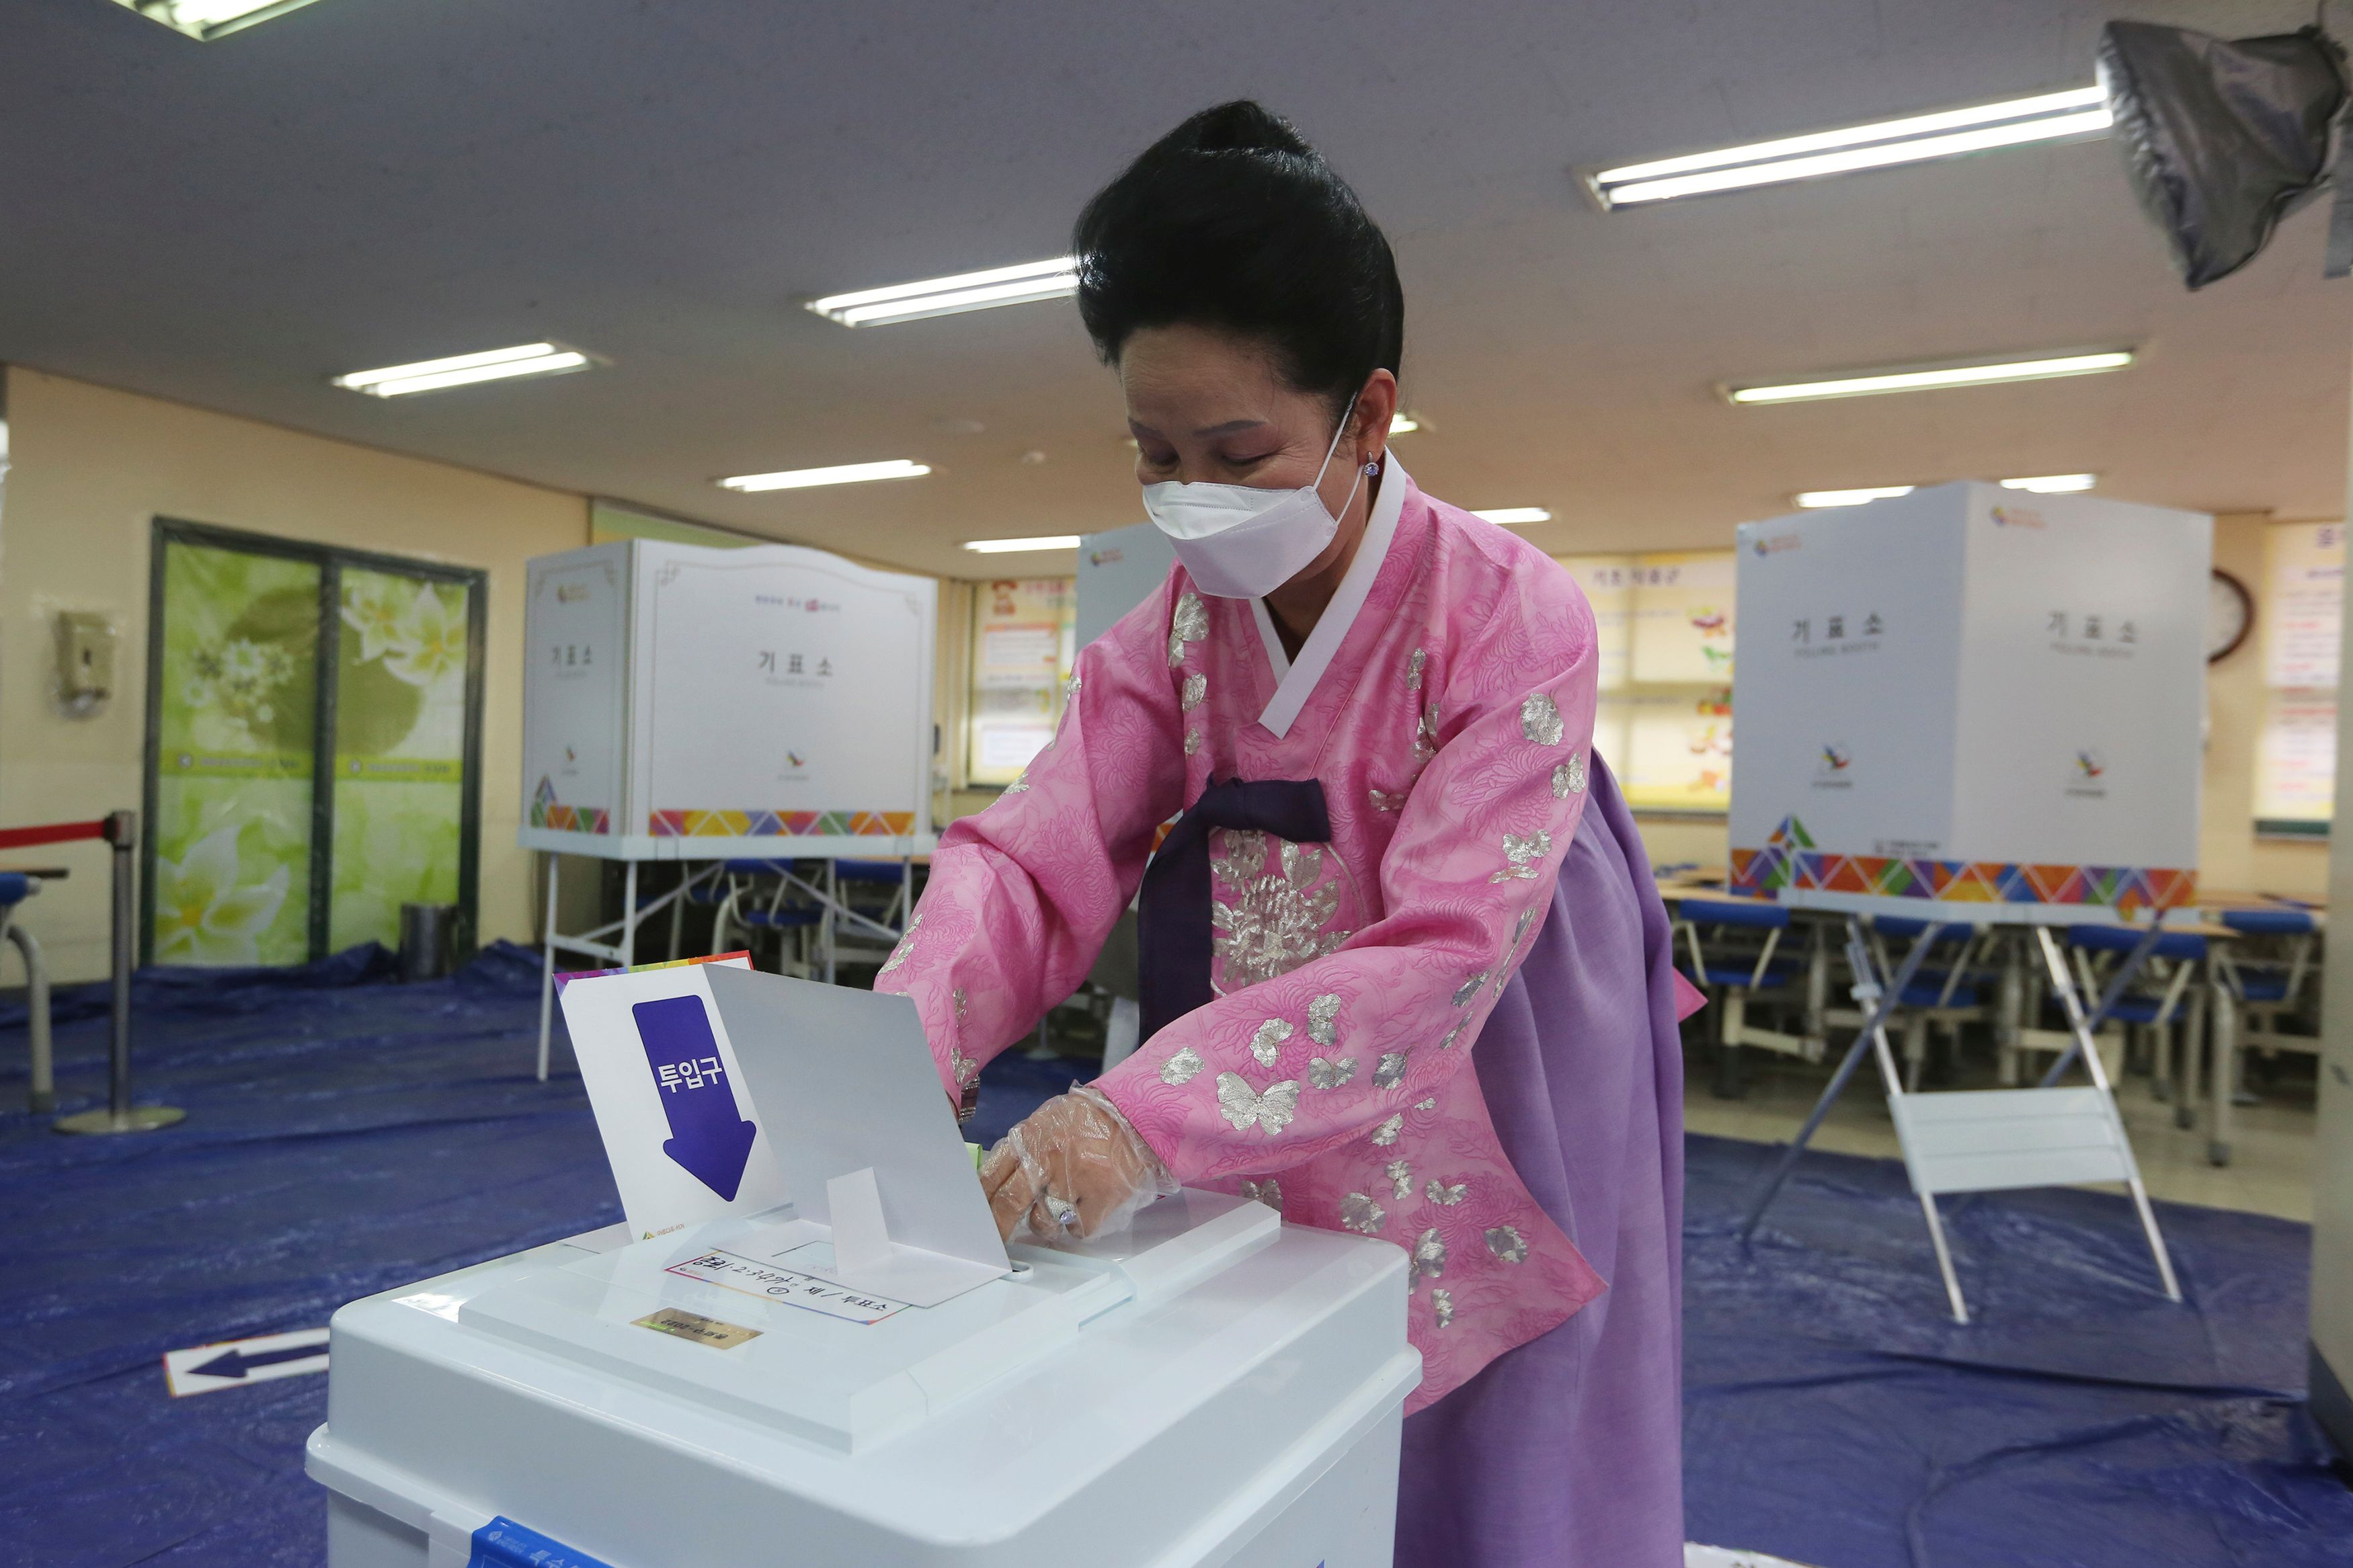 In the middle of the coronavirus pandemic, 66% of South Koreans turned out to vote